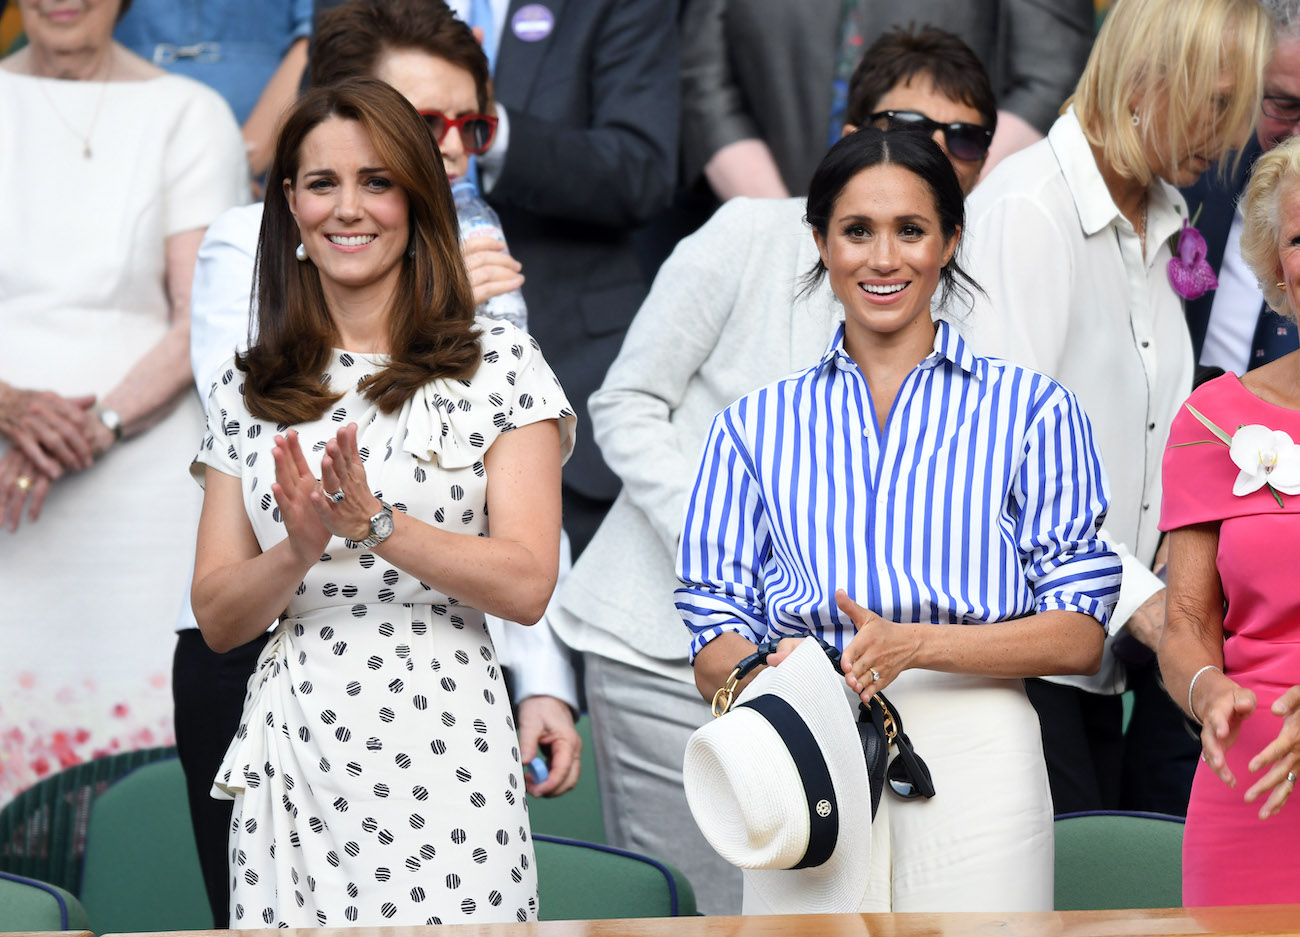 Kate Middleton and Meghan Markle Didn't Bond for 'Practical' Reasons, Royal Author Says